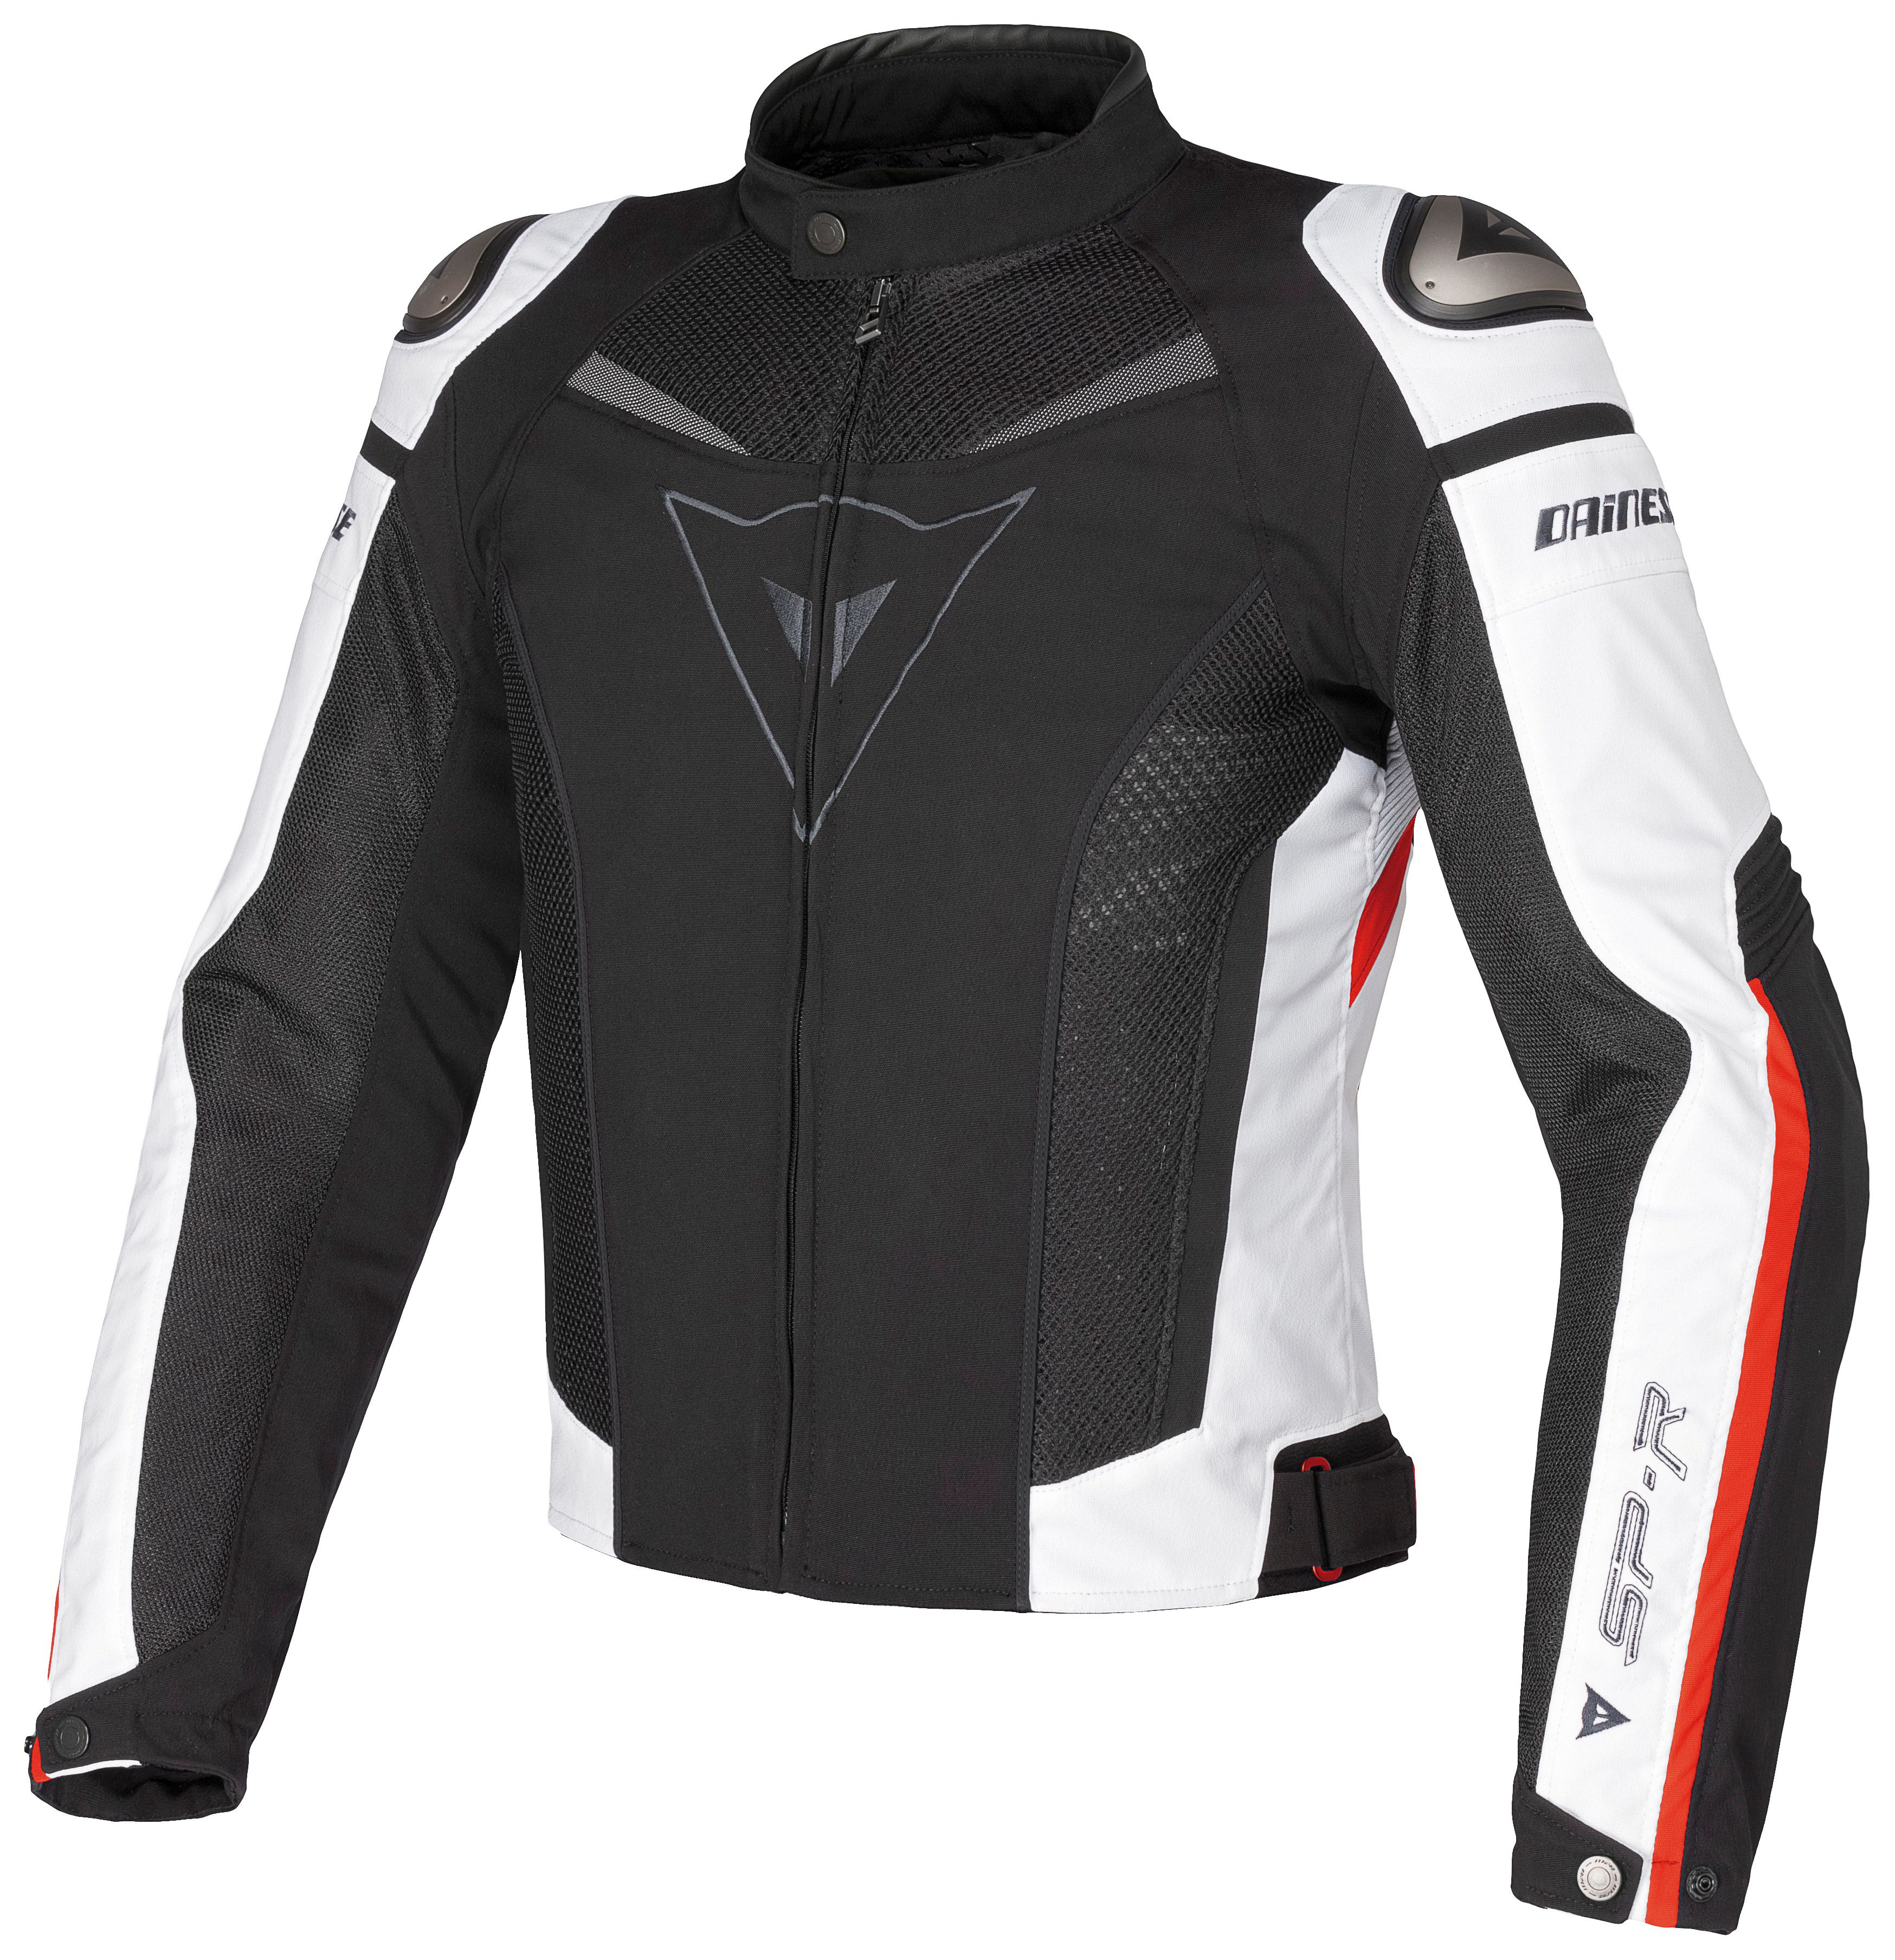 Dainese Gear   Motorcycle Jackets, Gloves, Boots, Race Suites   More ... be214b11af9f